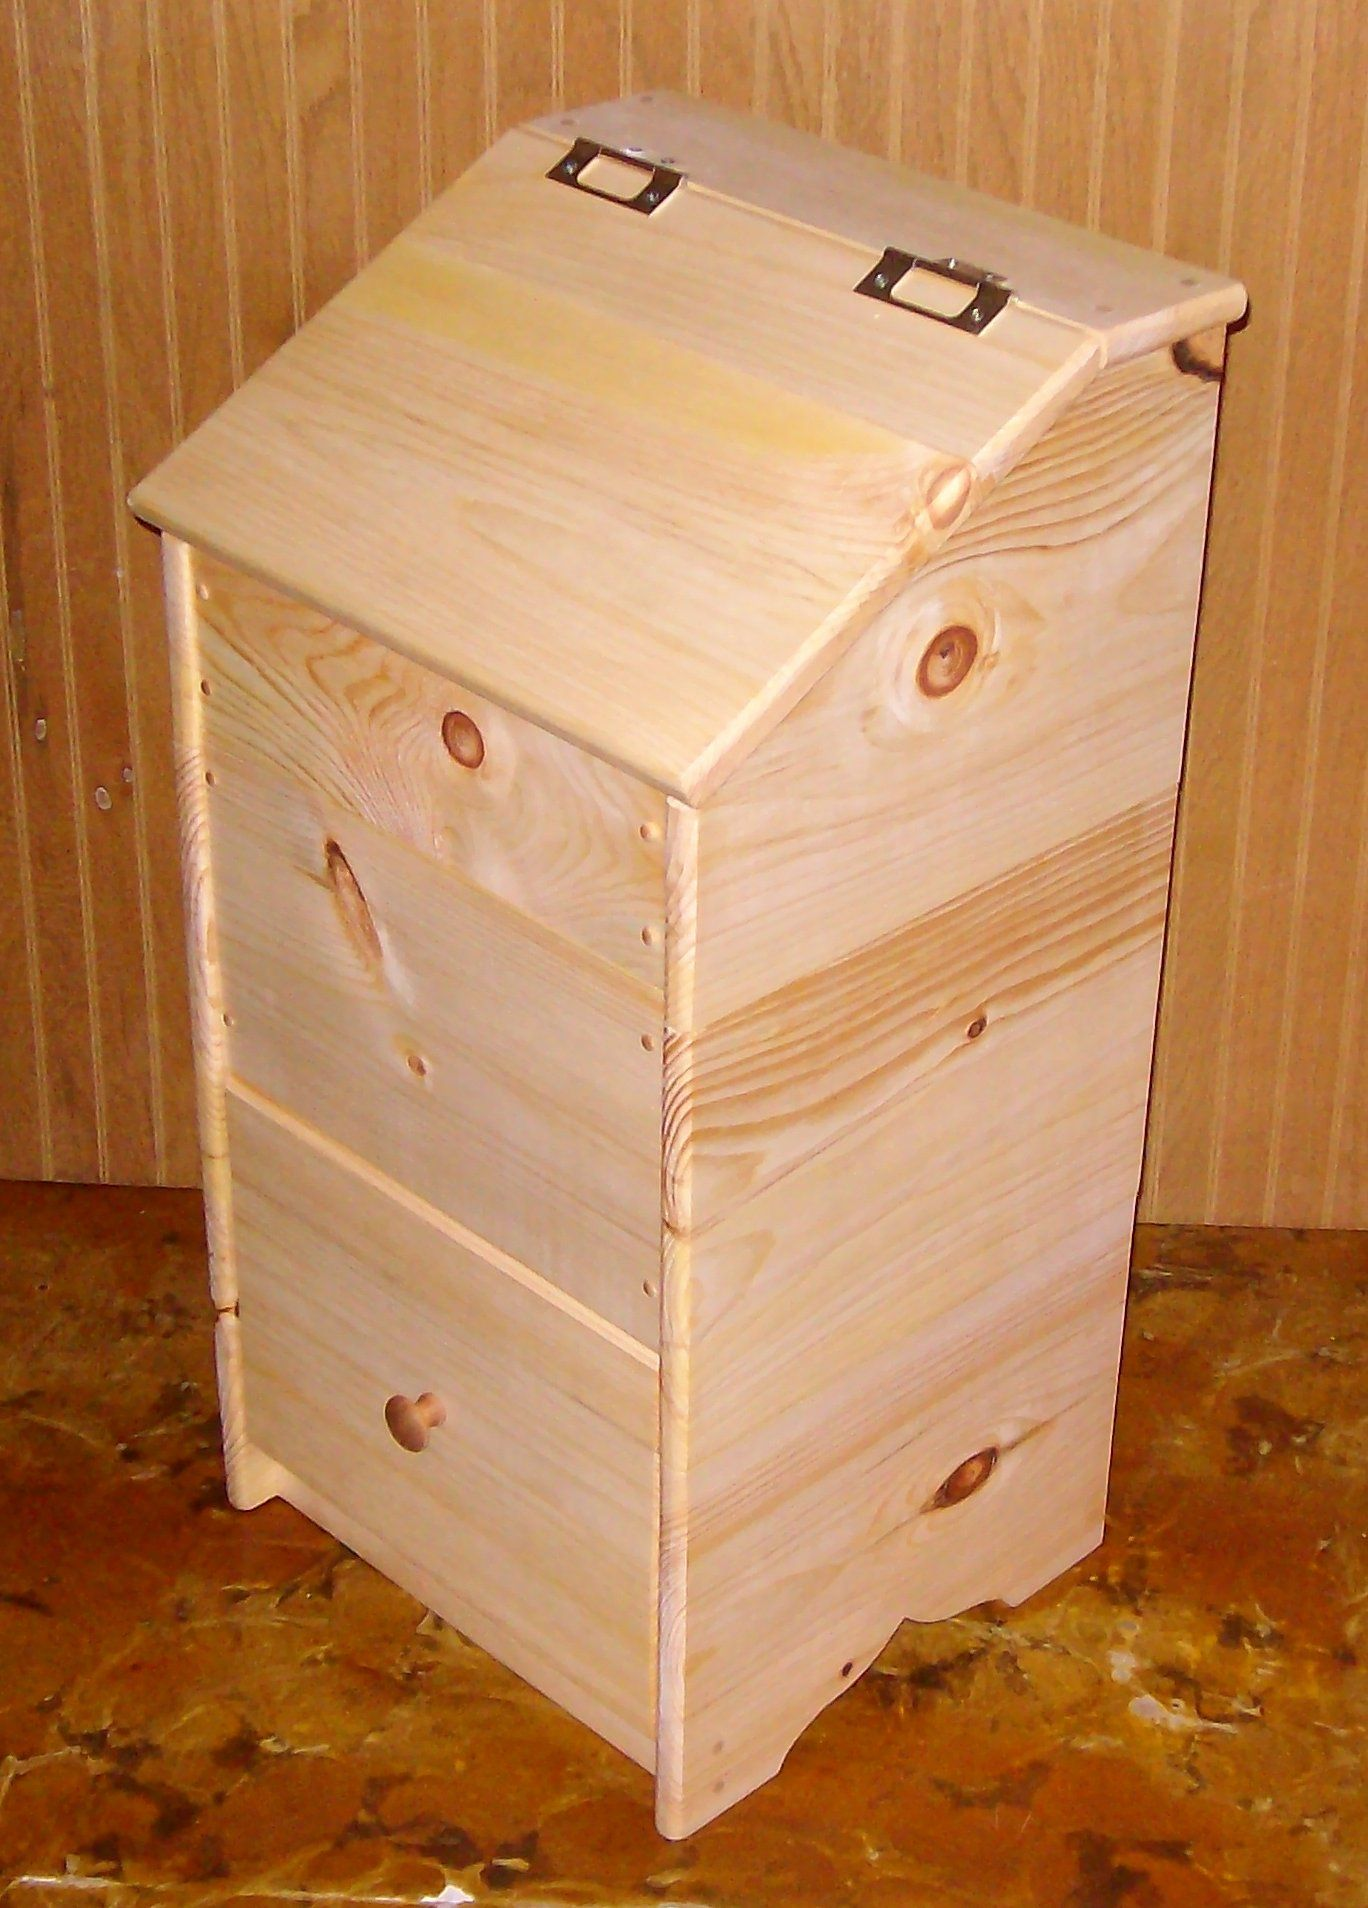 Elegant Pictures Of Potato Onion Storage Boxes | Http://www.dmhc.org